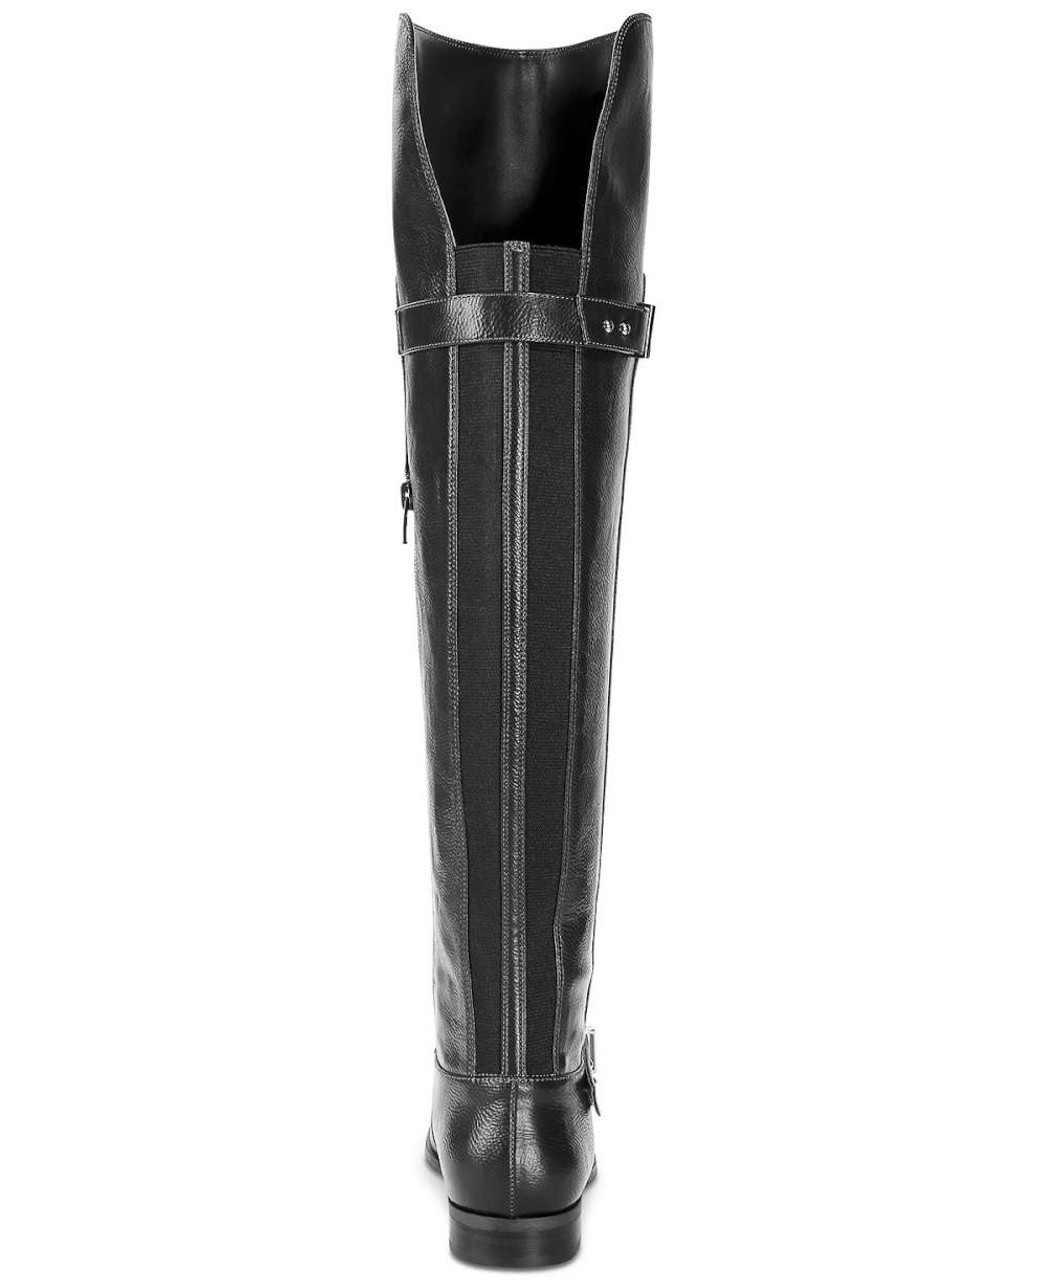 dd8248fc0ace1 Bar III Womens Daphne Closed Toe Over Knee Riding Boots~pp-24097d14